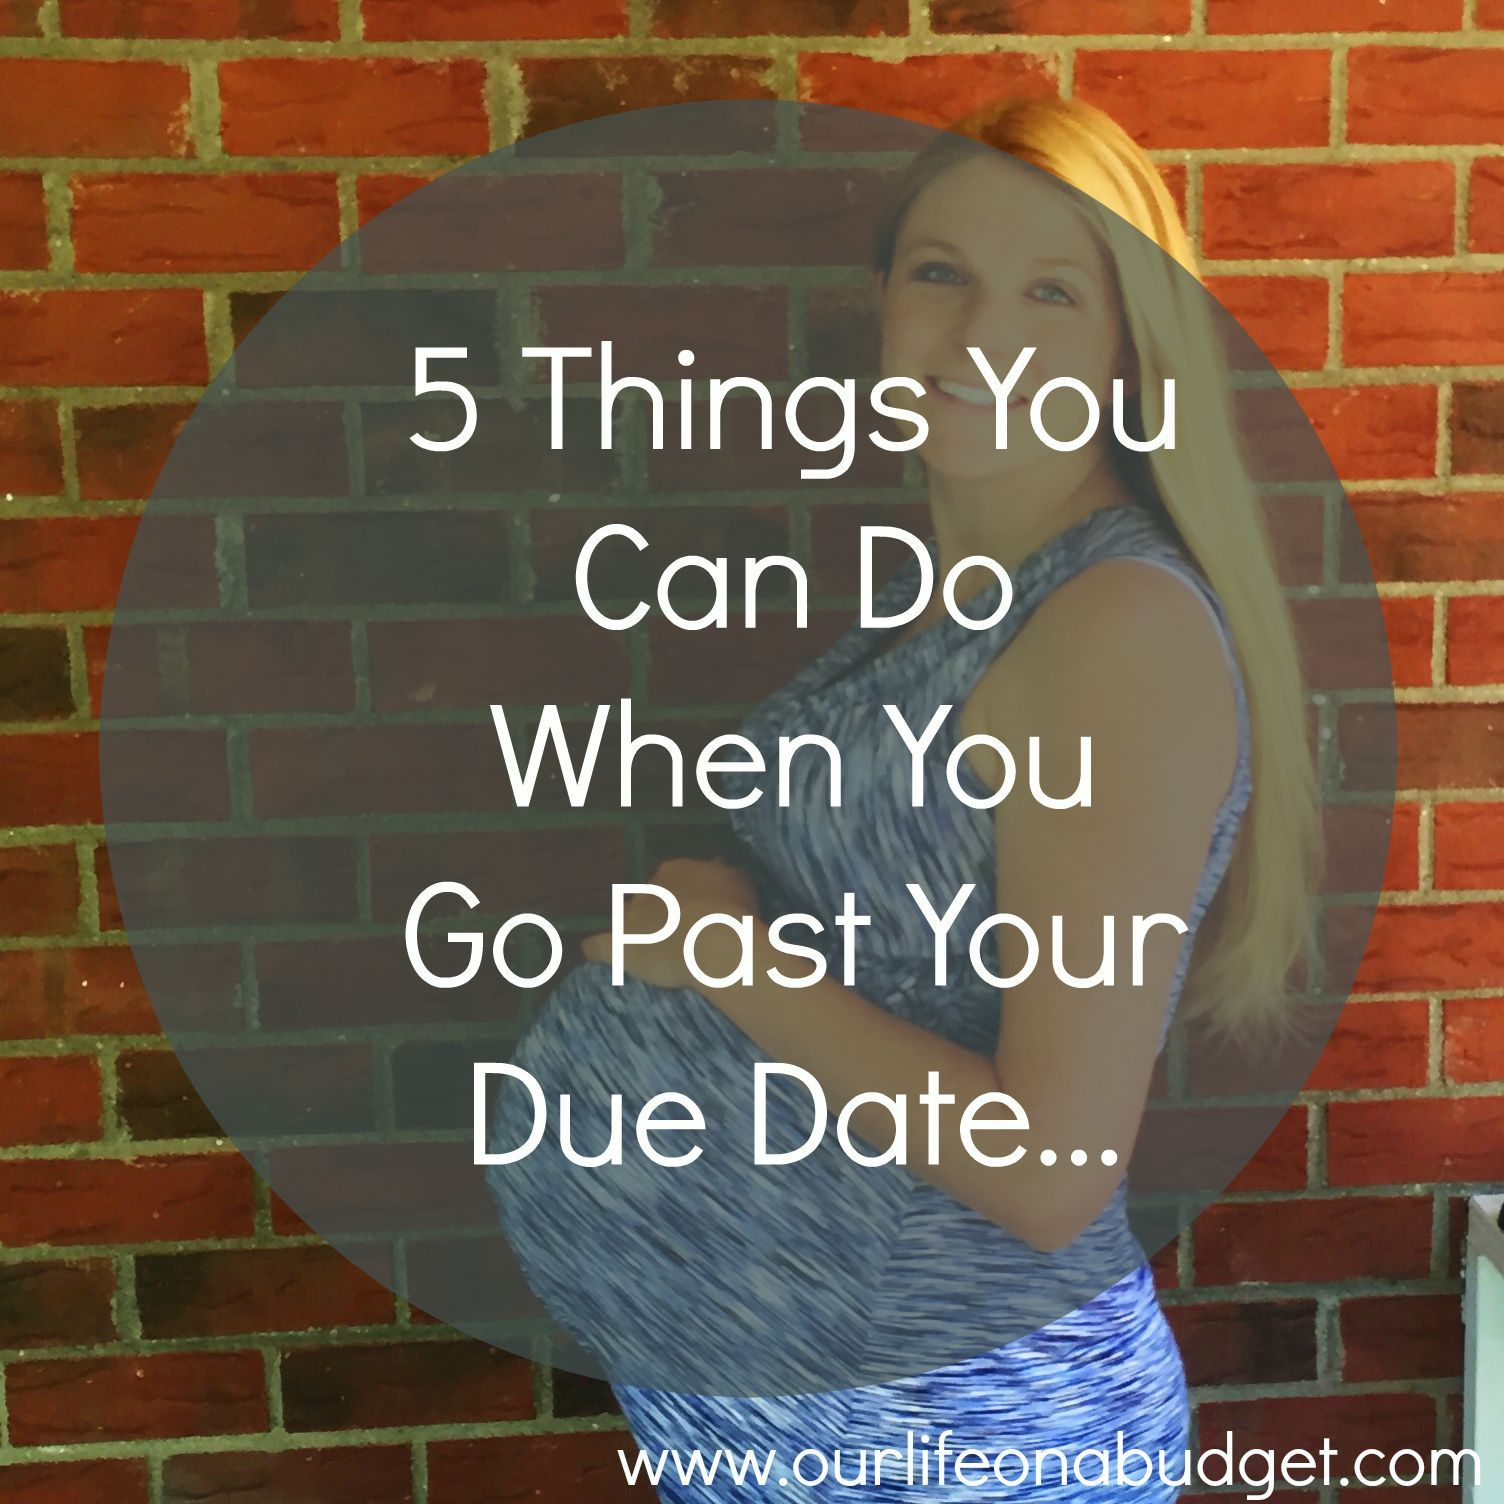 Our life on a budget...: 5 Things You Can Do When you Go Past Your Due Date...